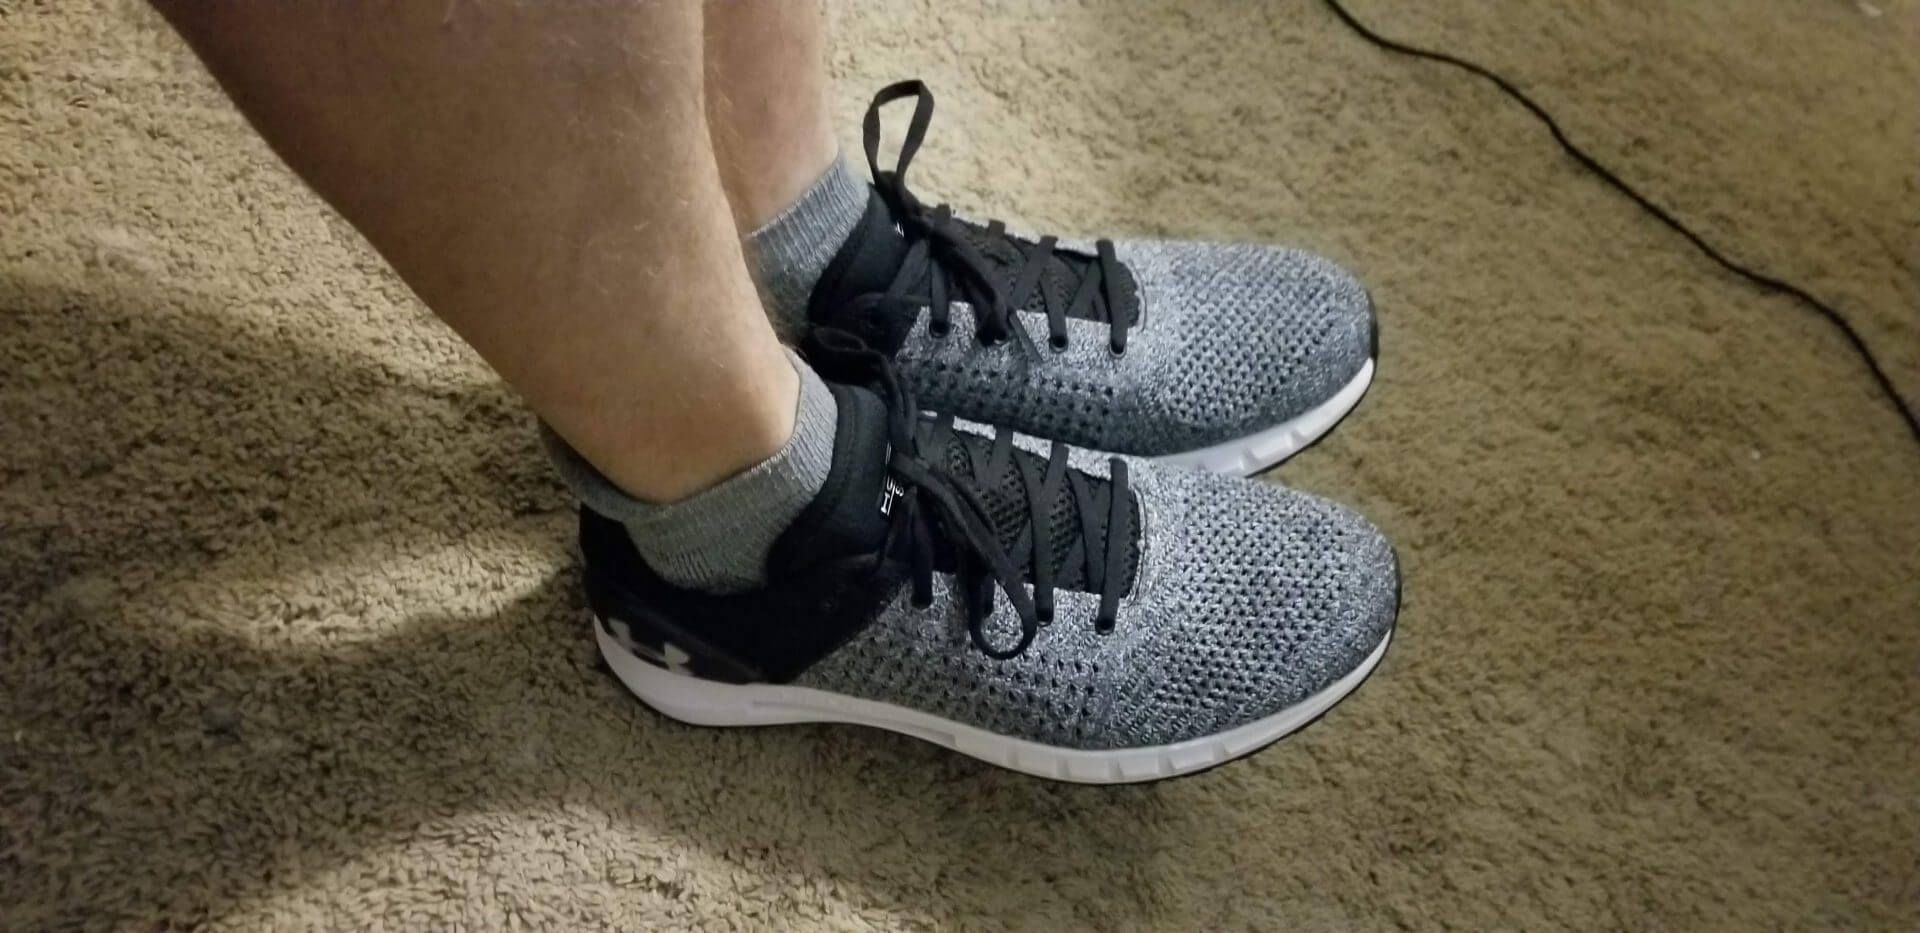 The Underarmour Hovr Sonic Is Road Worthy And I Think It S Certainly Worth A Trip To Your Nearest Running Shop Under Armour Running Shoe Reviews Geek Fitness